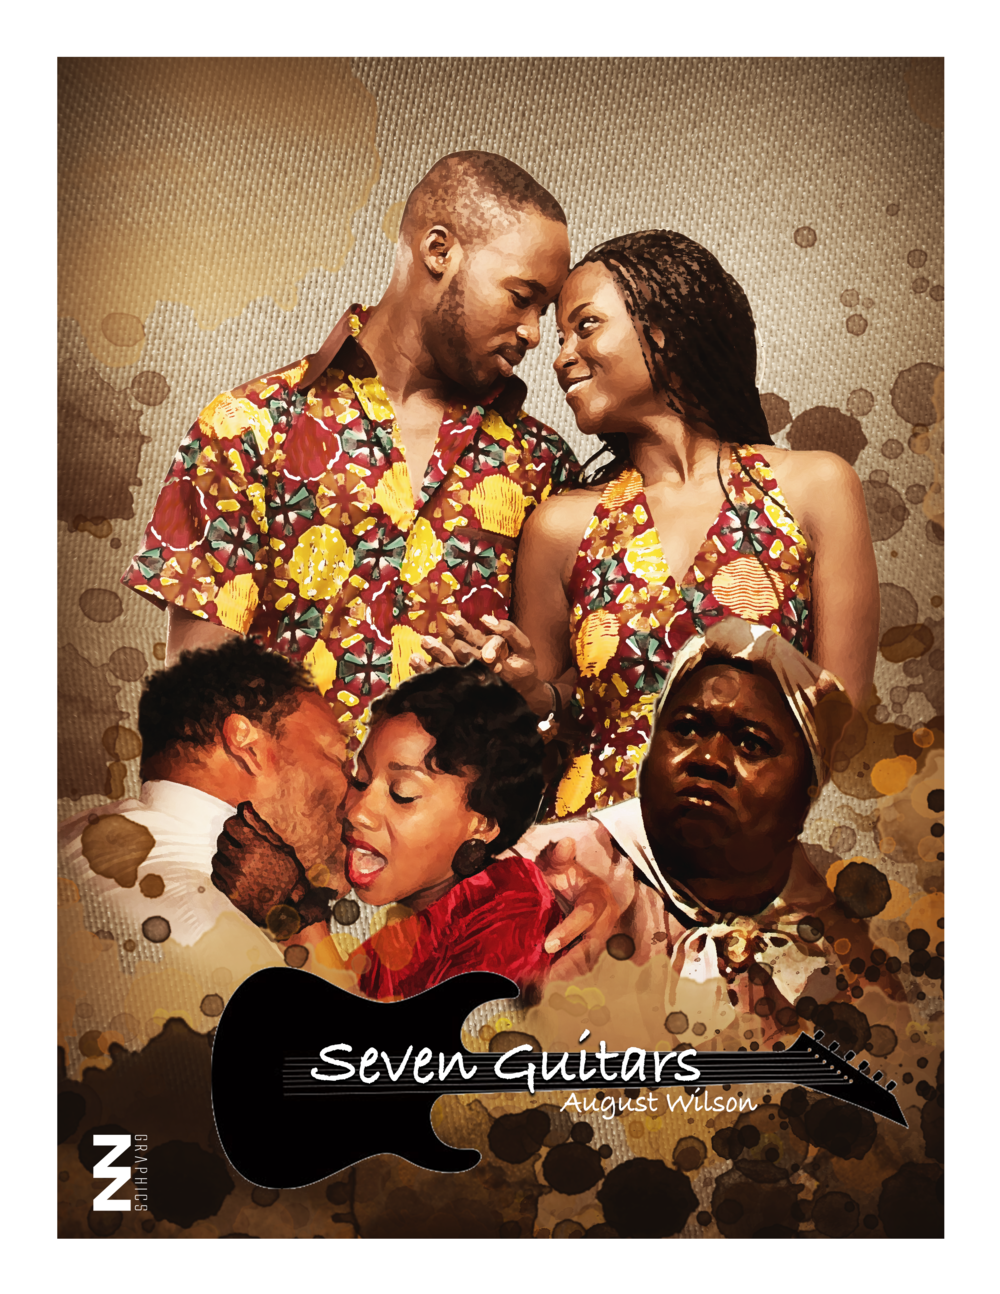 Seven Guitars  by August Wilson. This was done in tribute to August Wilson and his portrayal of woman through the book  Seven Guitars    .